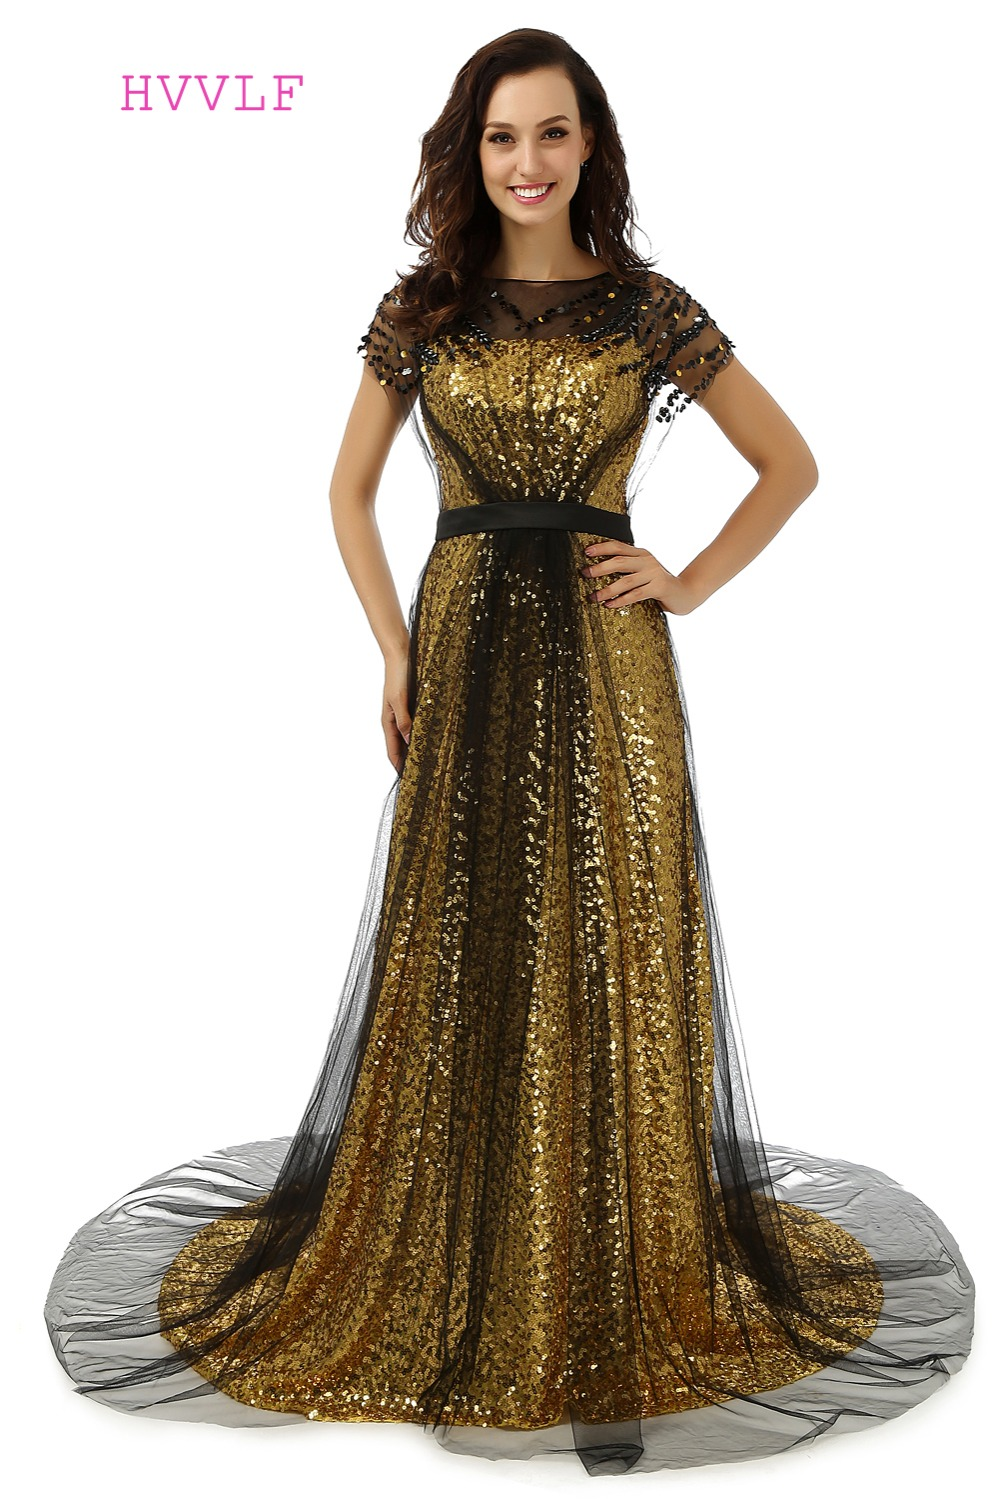 Black Gold Robe De Soiree 2019 A-line Short Sleeves Sequins Sparkle See Through Women Long   Prom     Dresses     Prom   Gown Evening   Dress